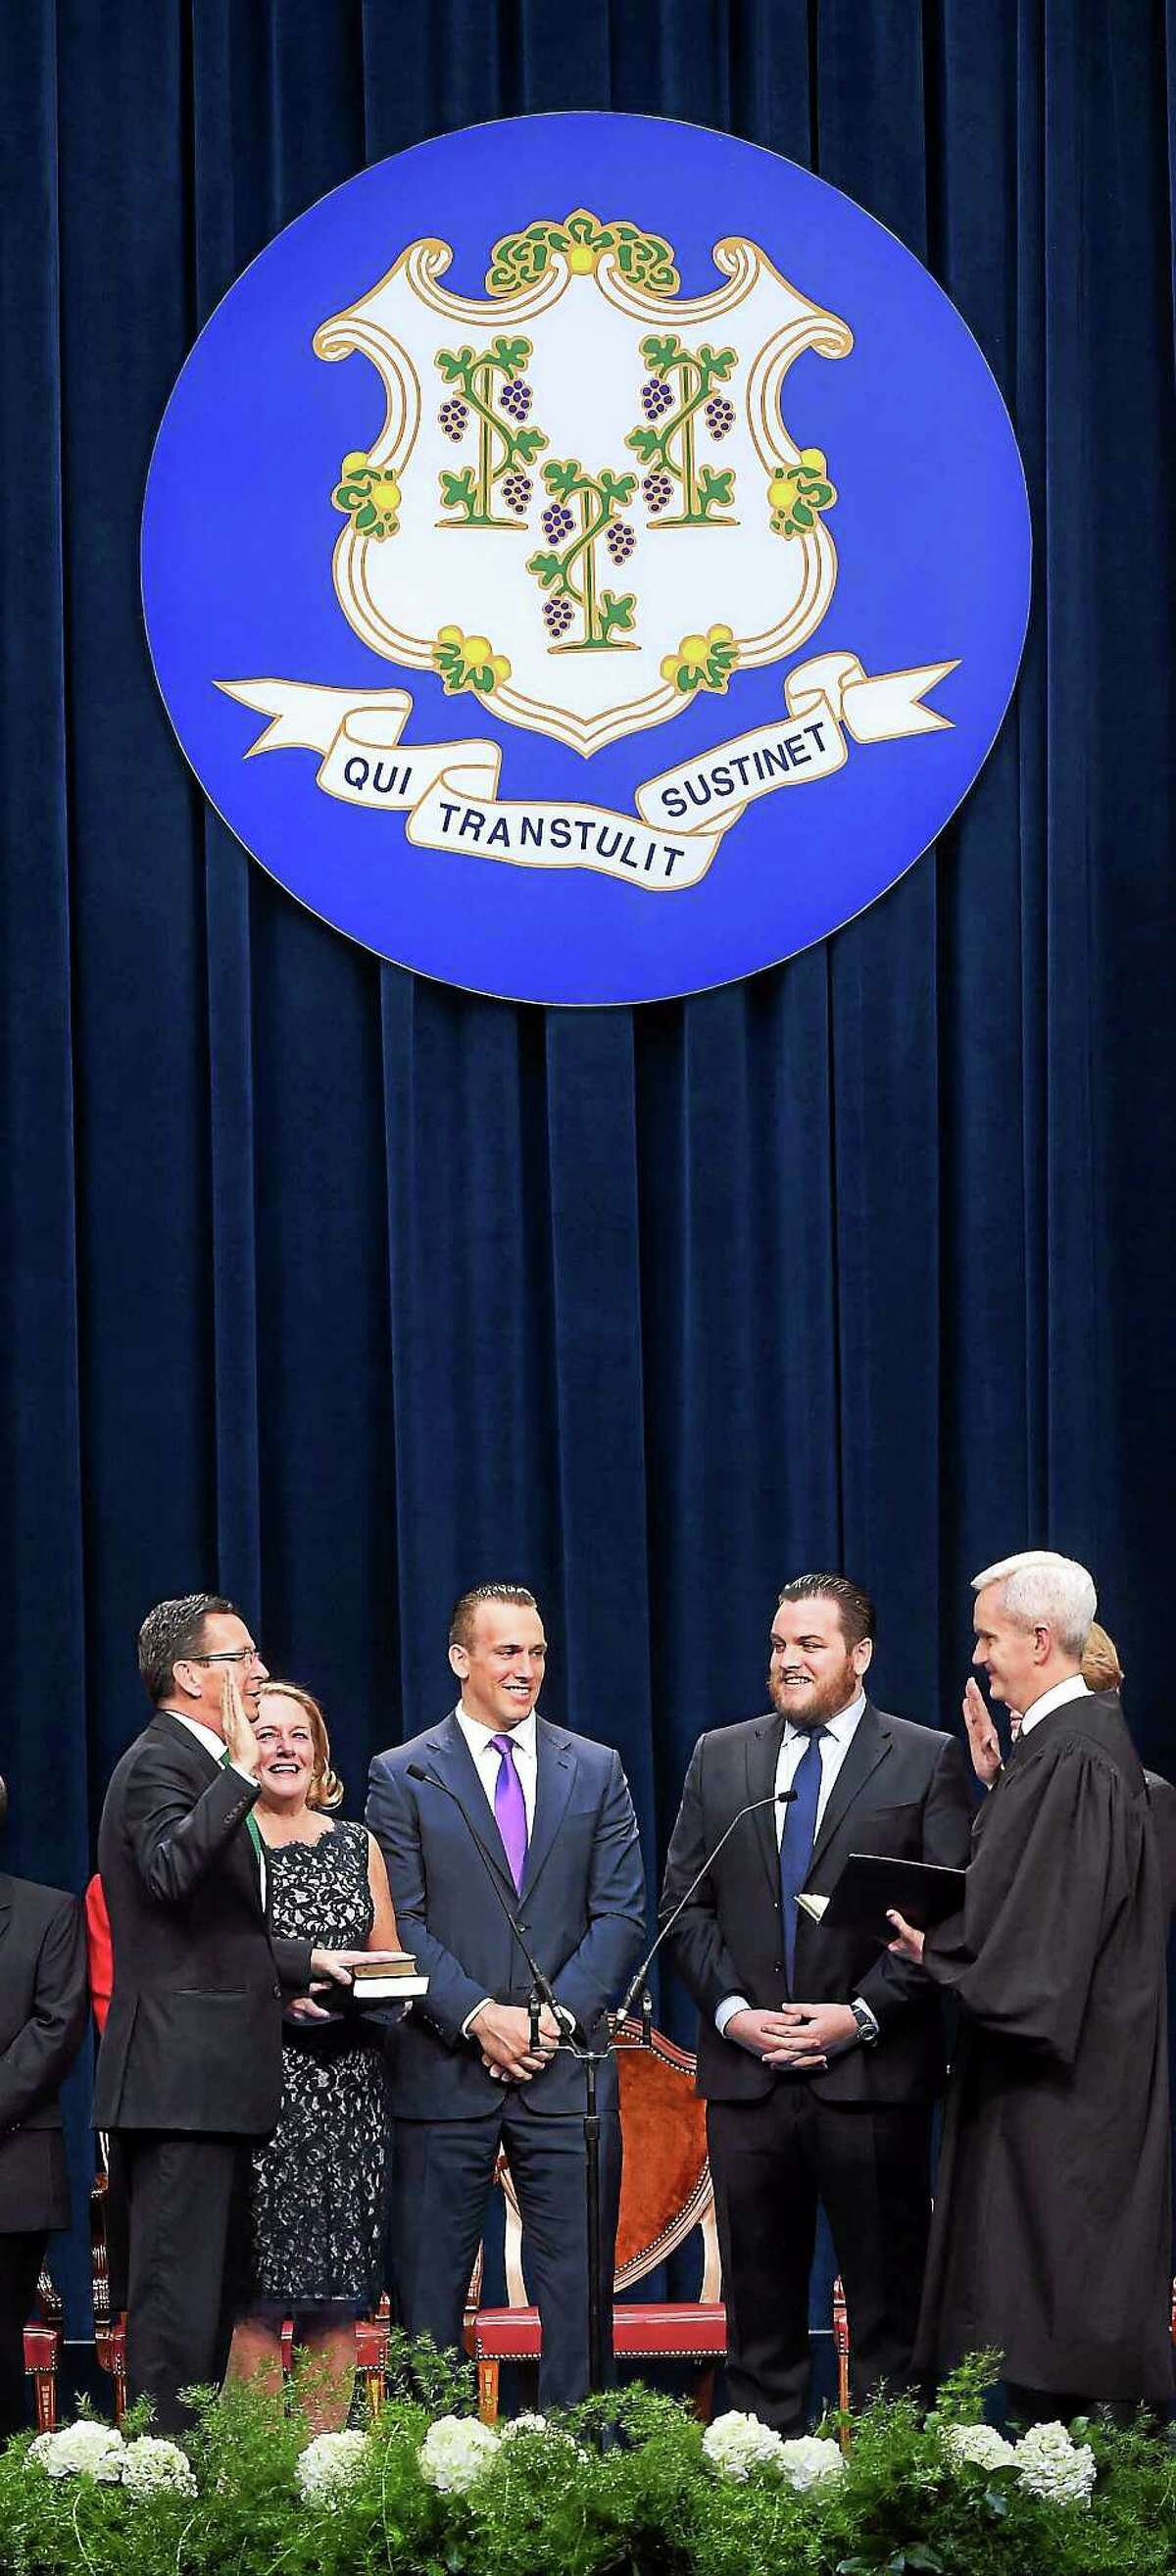 Governor Dannel P. Malloy (left) is sworn into office by Connecticut Supreme Court Justice Andrew J. McDonald (right) in the William A. O'Neill State Armory in Hartford on January 7, 2015.